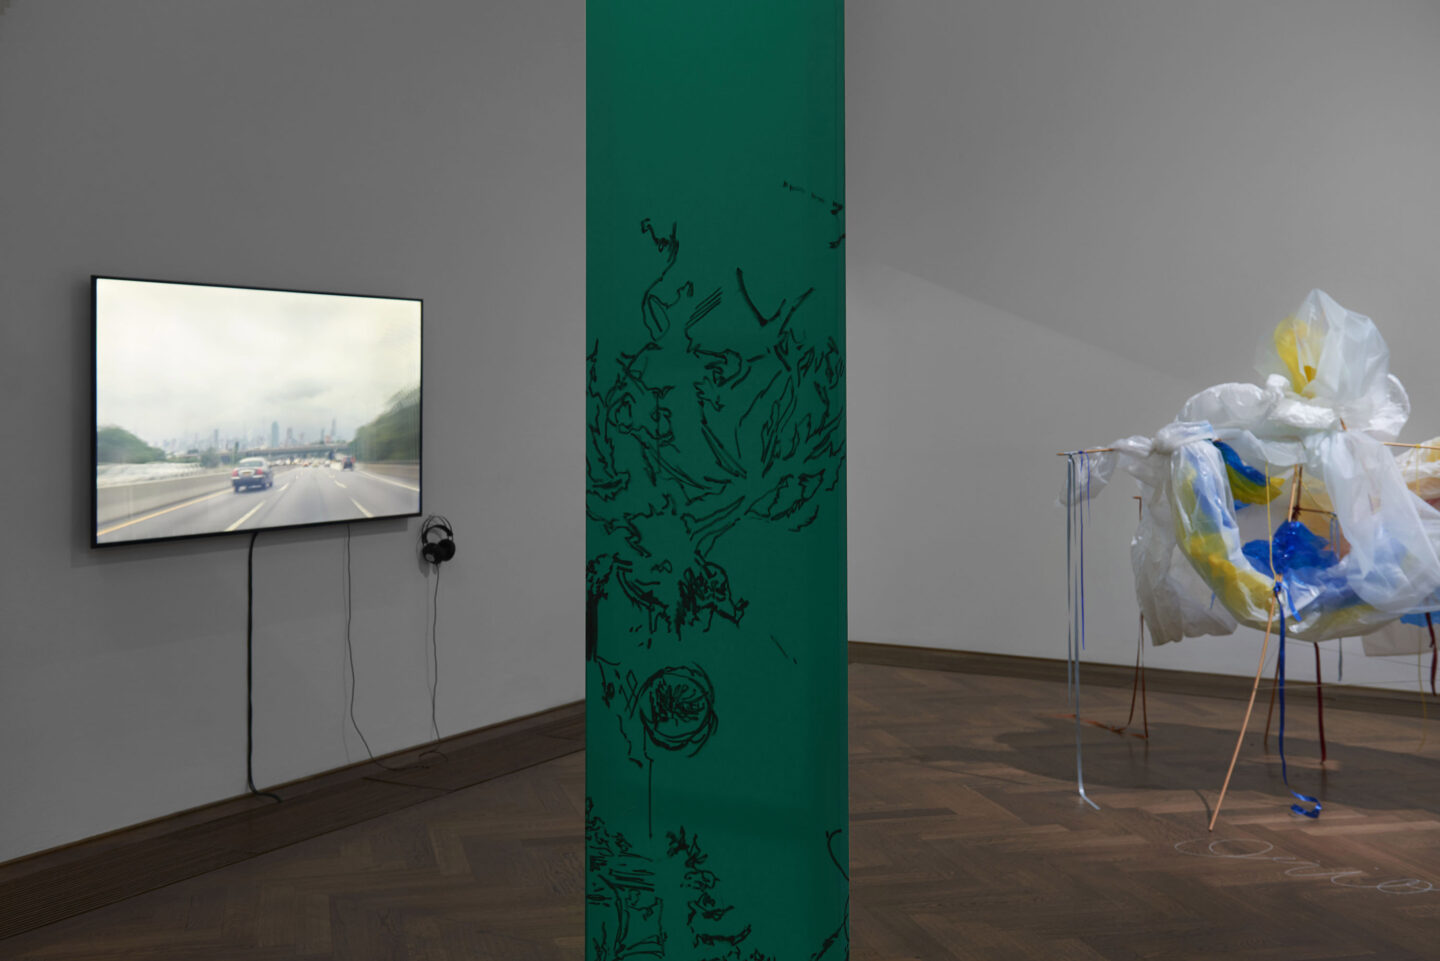 Exhibition View Groupshow «Bizarre Silks, Private Imaginings and Narrative Facts, etc.; view on Ken Okiishi, Untitled, 2016 (video on the left)» an exhibition by Nick Mauss at Kunsthalle Basel, Basel, 2020 / Photo: Philipp Hänger and Kunsthalle Basel / Courtesy: the artists and Kunsthalle Basel